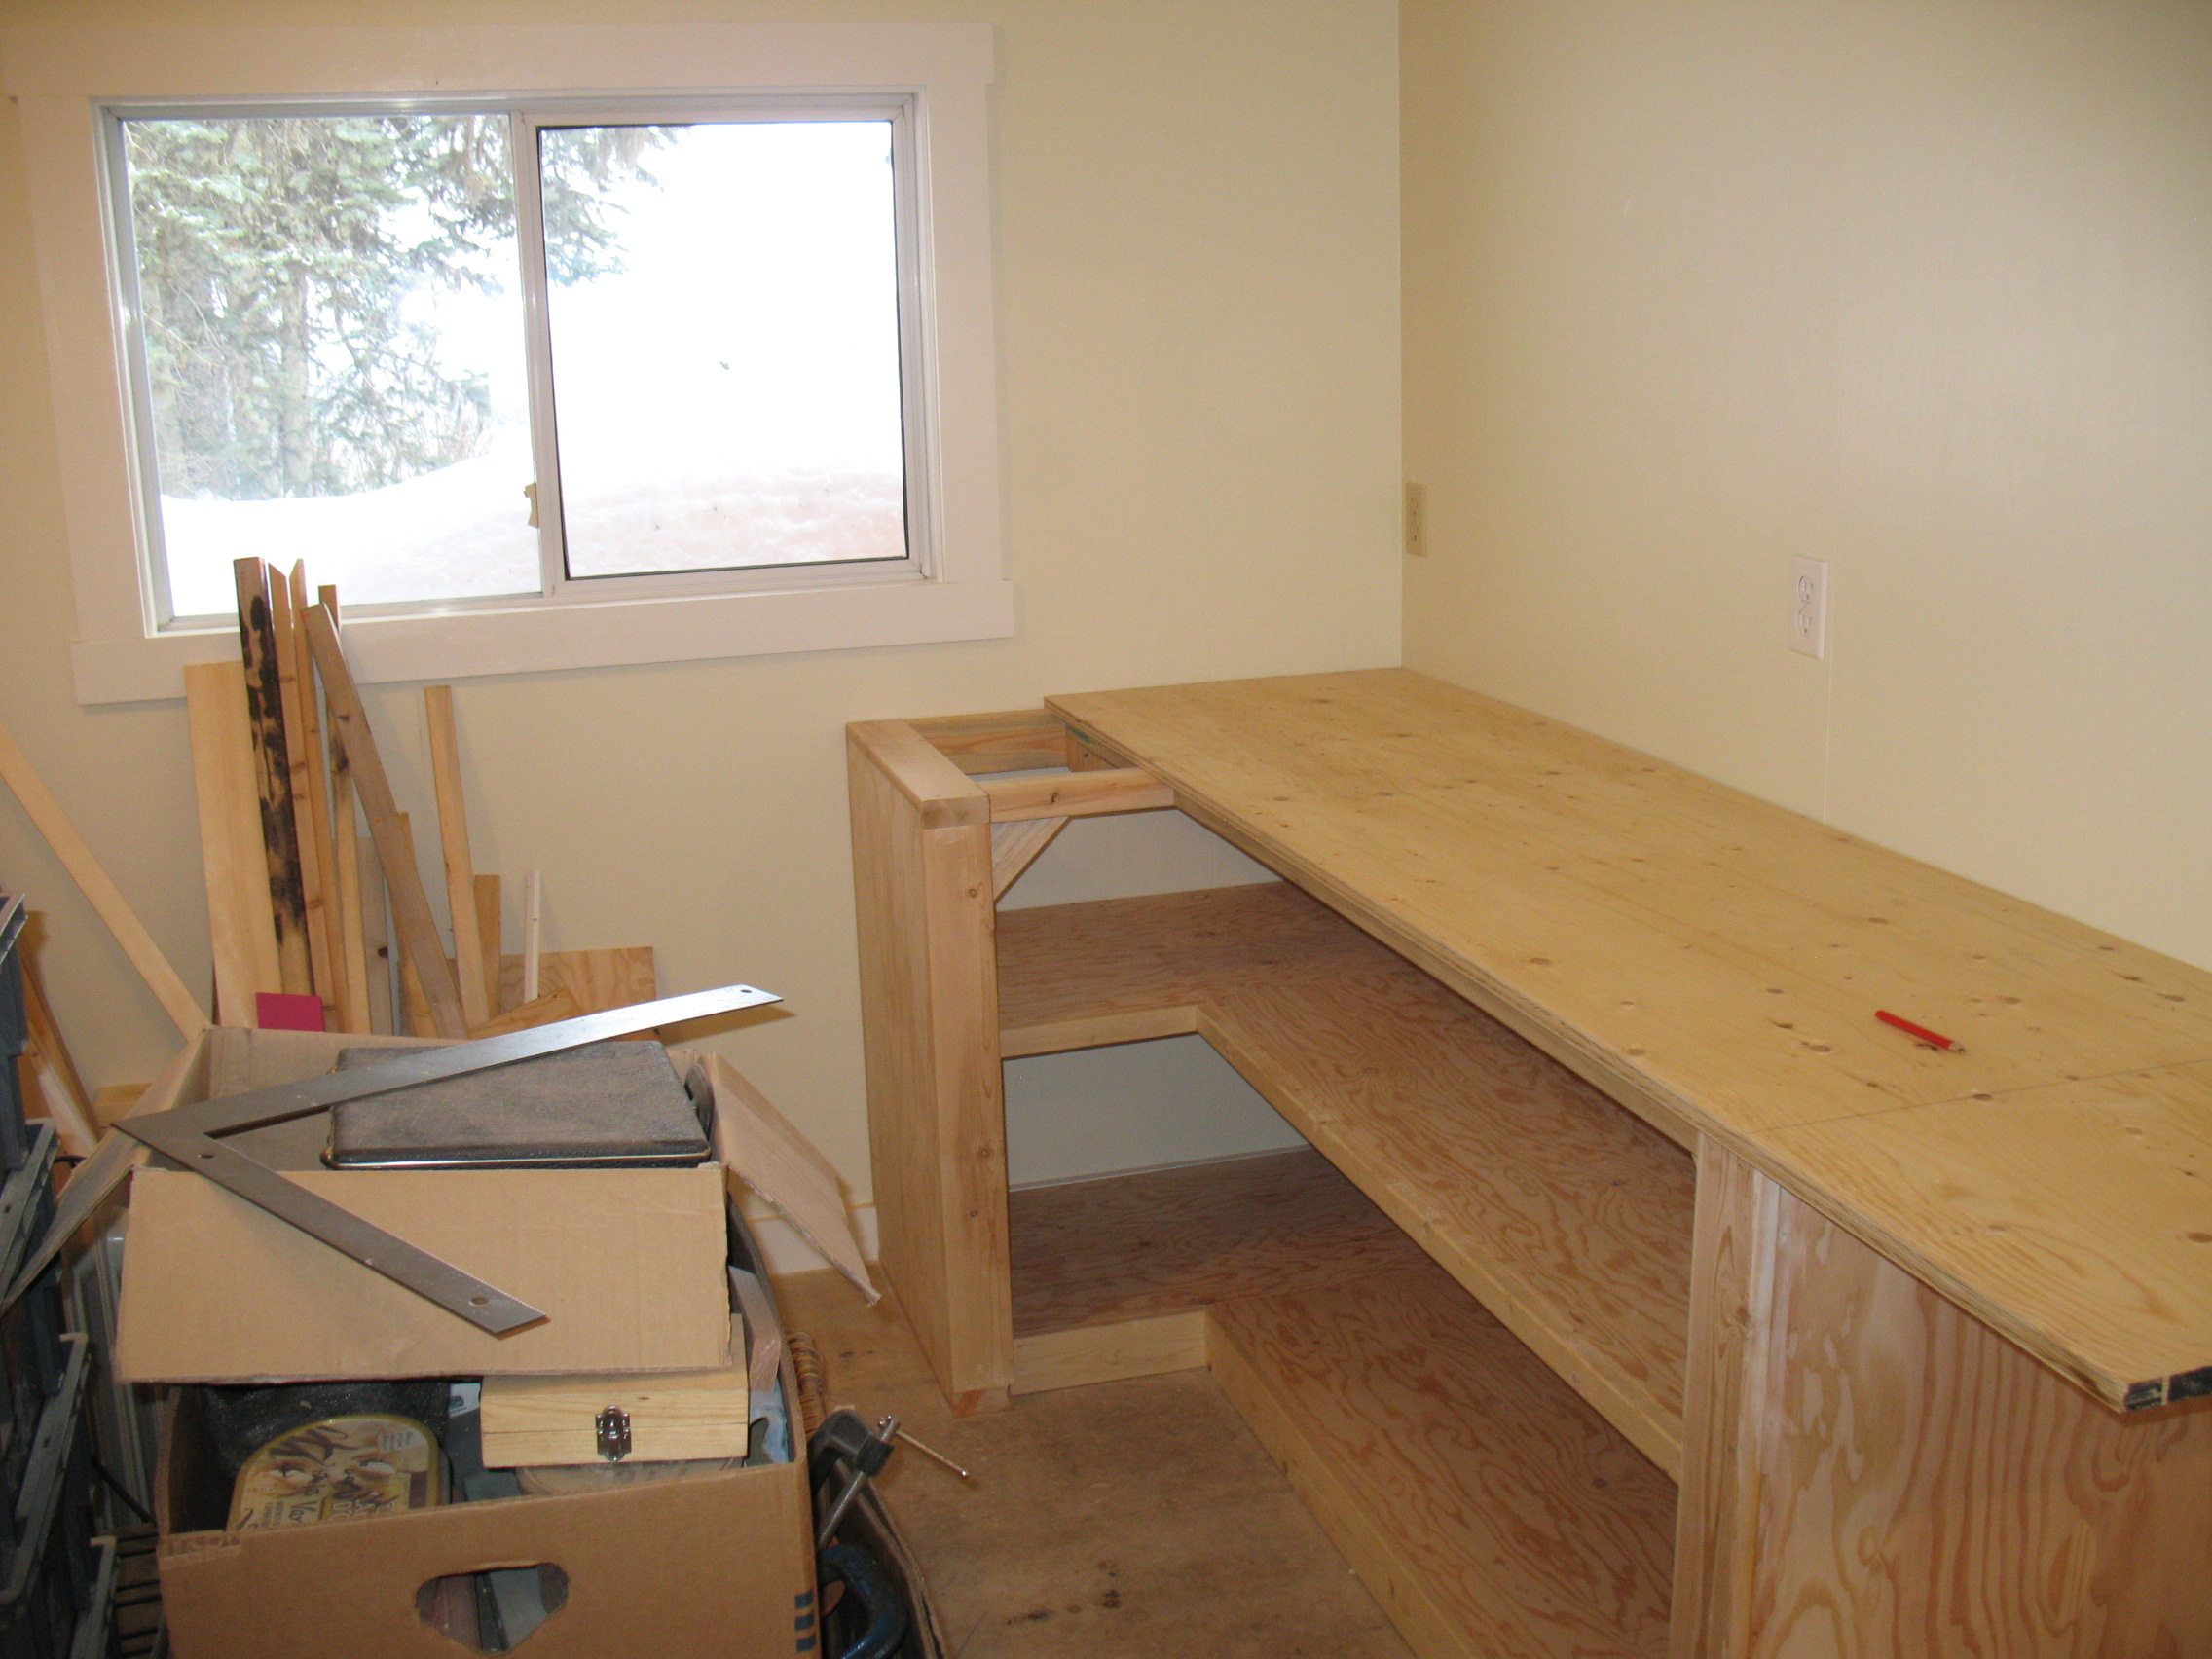 The pizza-prep area gets its counter installed.